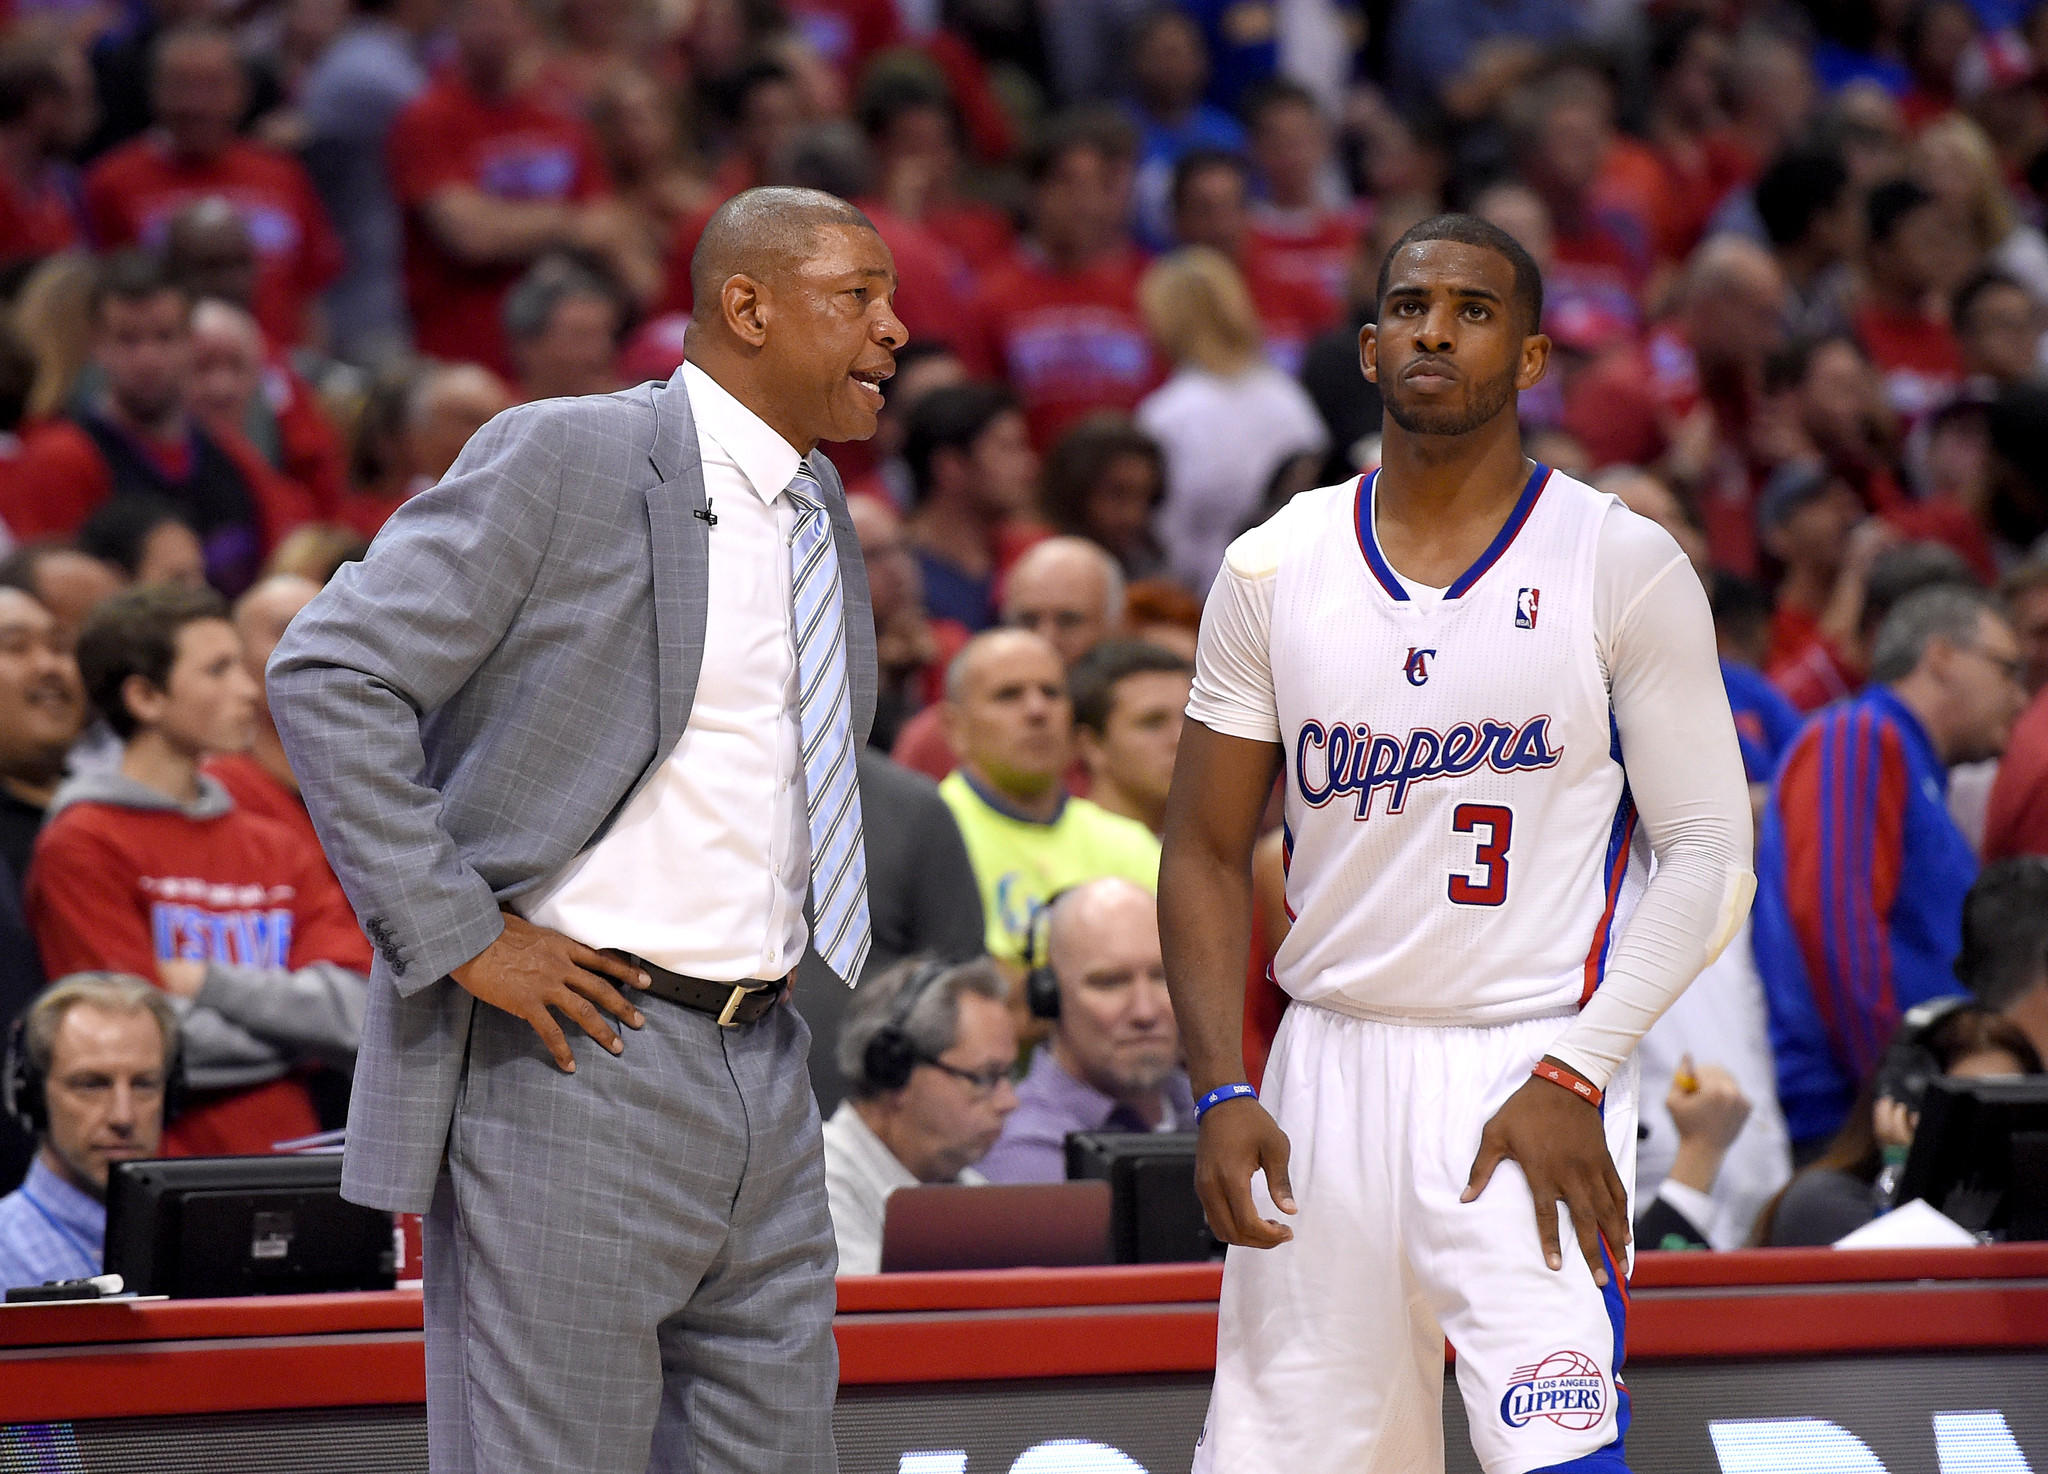 Clippers Coach Doc Rivers talks to point guard Chris Paul during the second half of Game 1 in their playoff series against the Golden State Warriors.